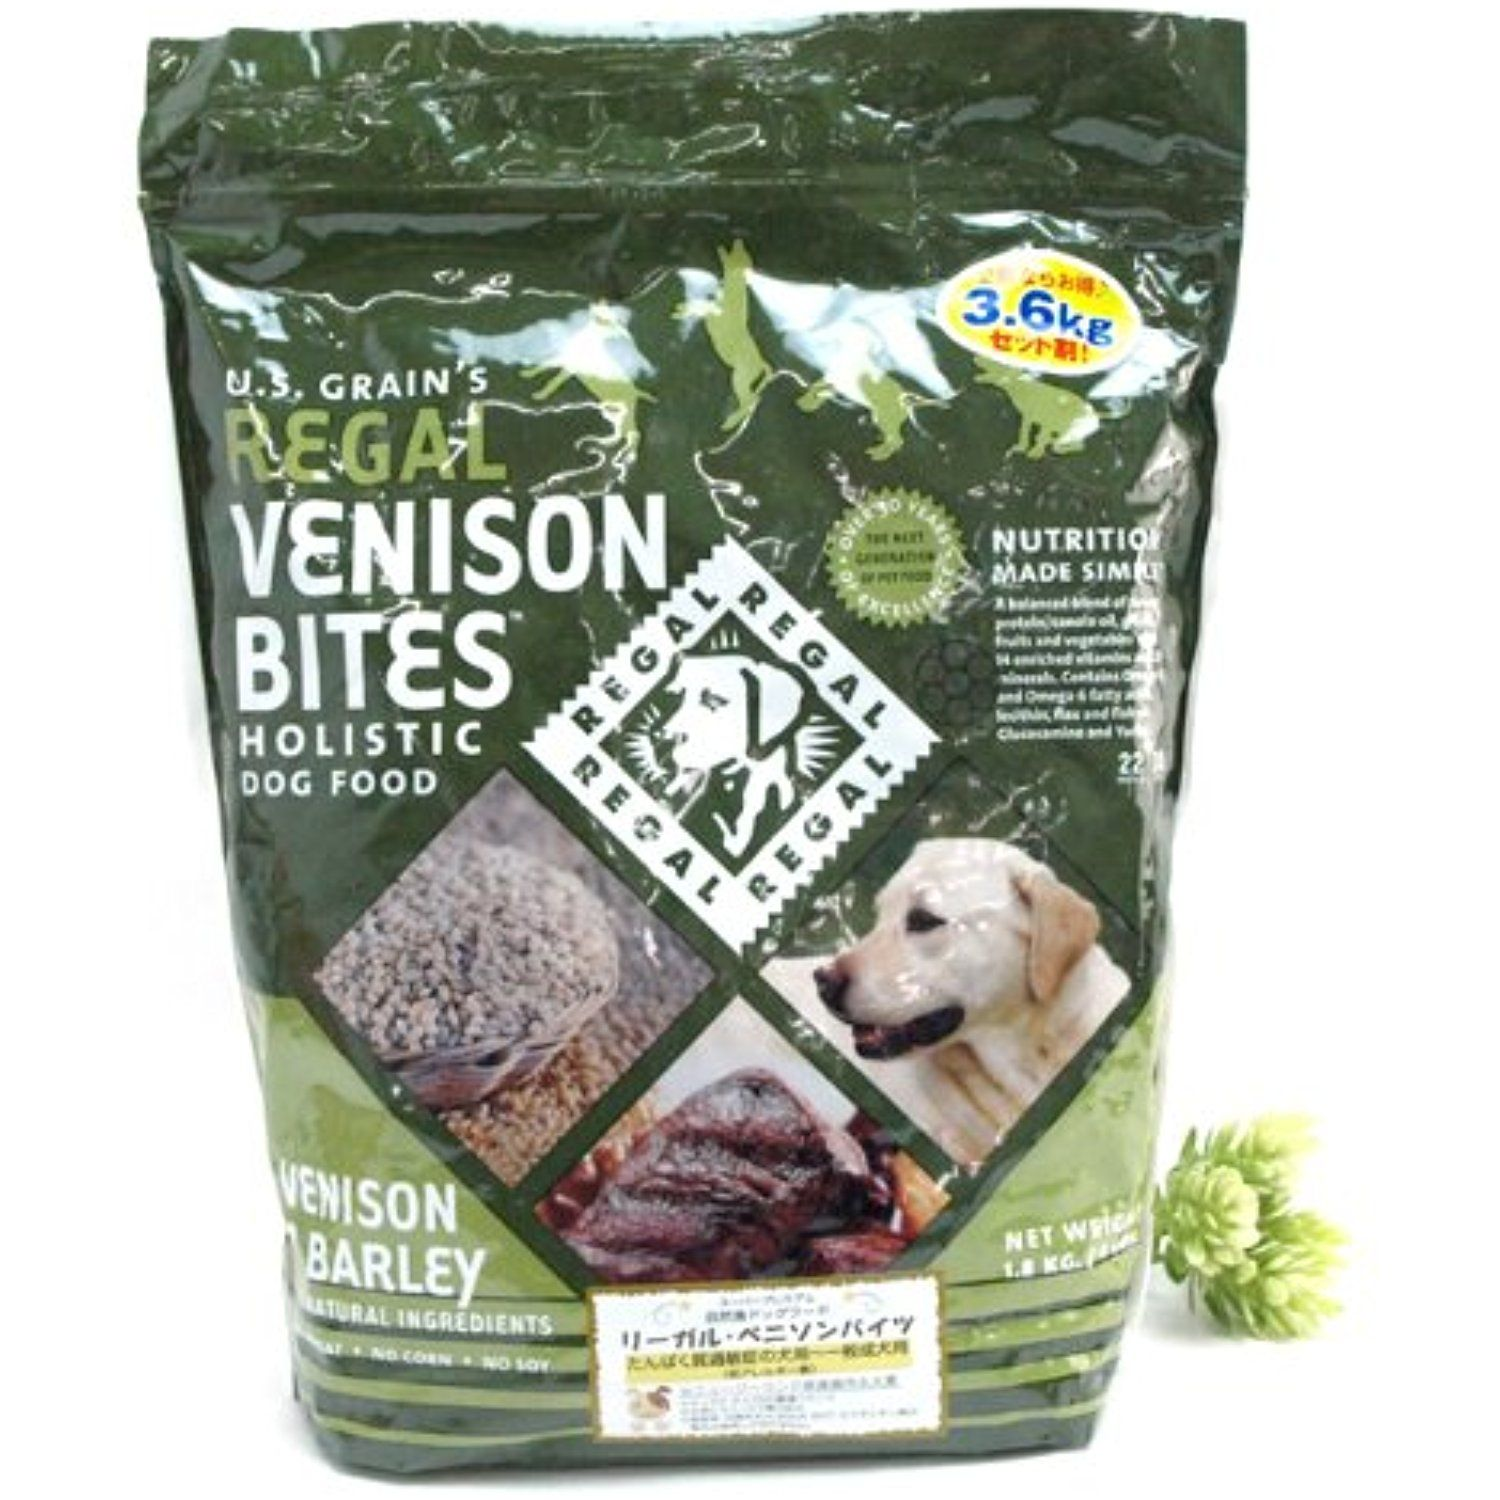 Regal Venison Bites Dry Dog Food 4lb Bag You Could Get More